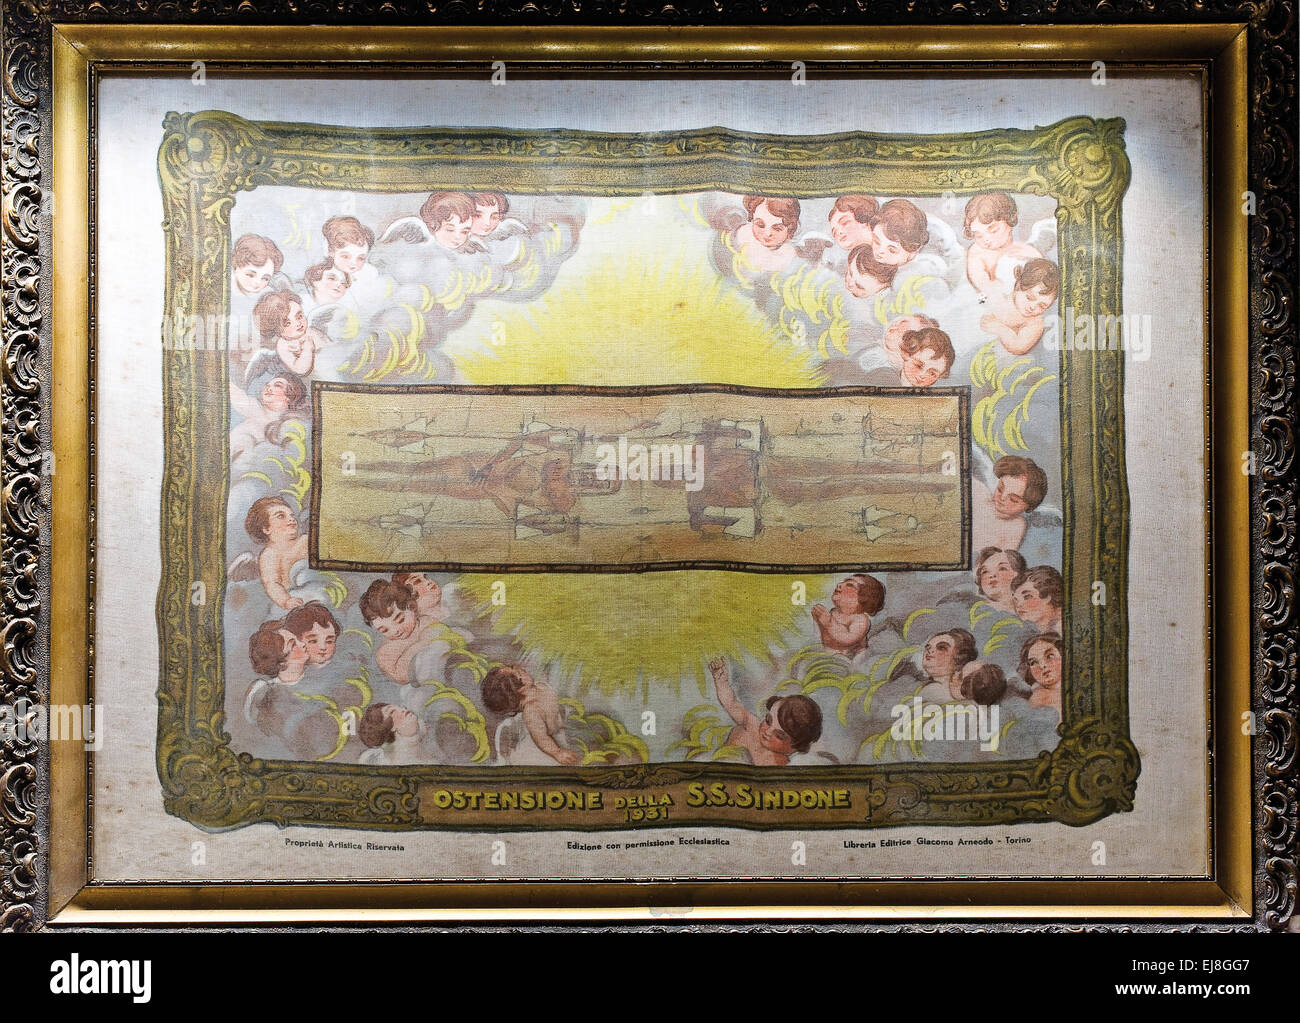 Italy Piedmont Turin Museum of the Shroud depiction exposition of the Shroud 1931 - Stock Image